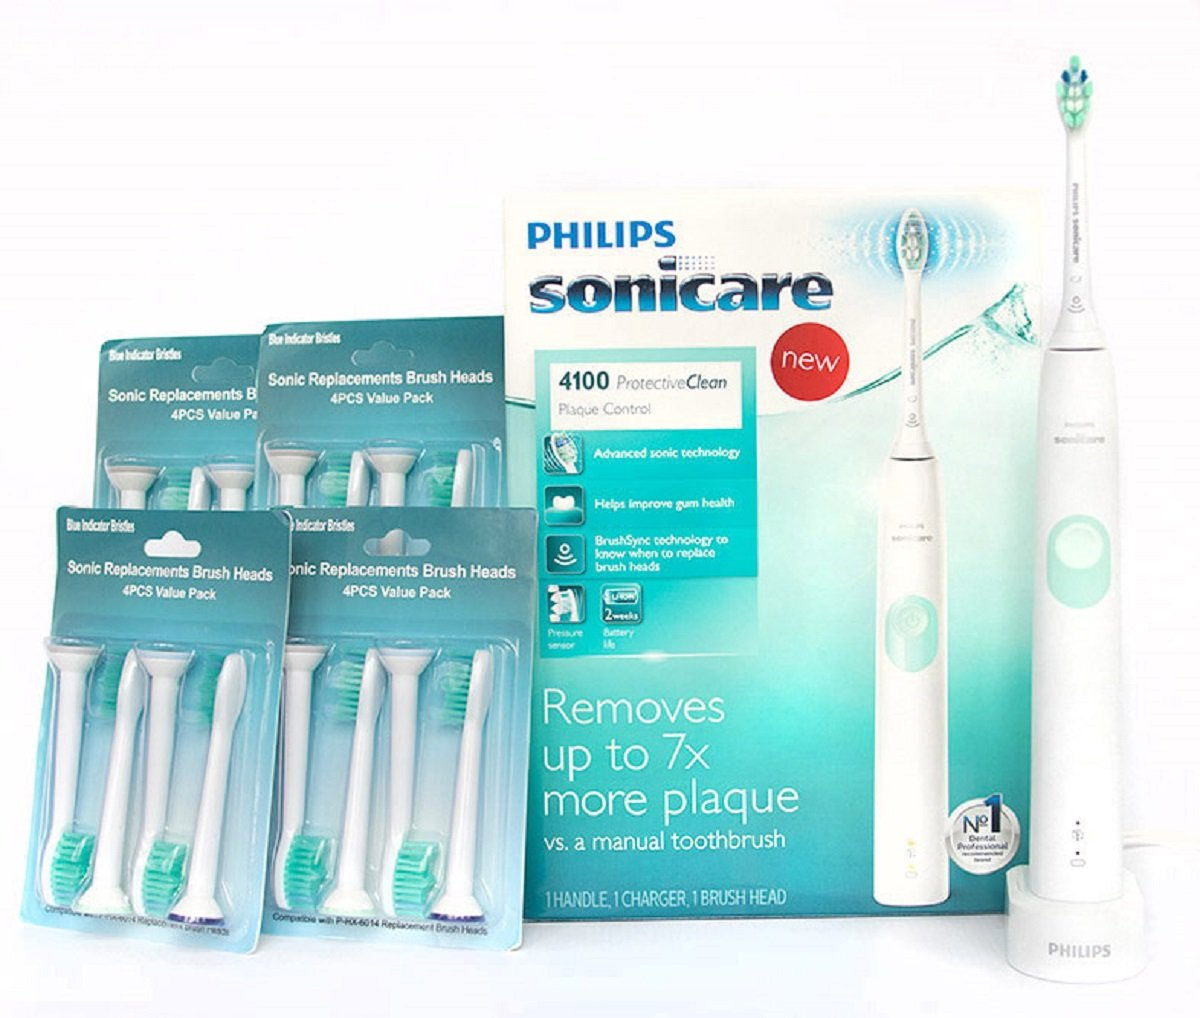 Philips Sonicare Rechargeable Electric Toothbrush ProtectiveClean 4100 Plaque Control With Pressure Sensor, White Mint HX6817/01 and Sonic Replacement Brush Heads 4-pack -Set of 5